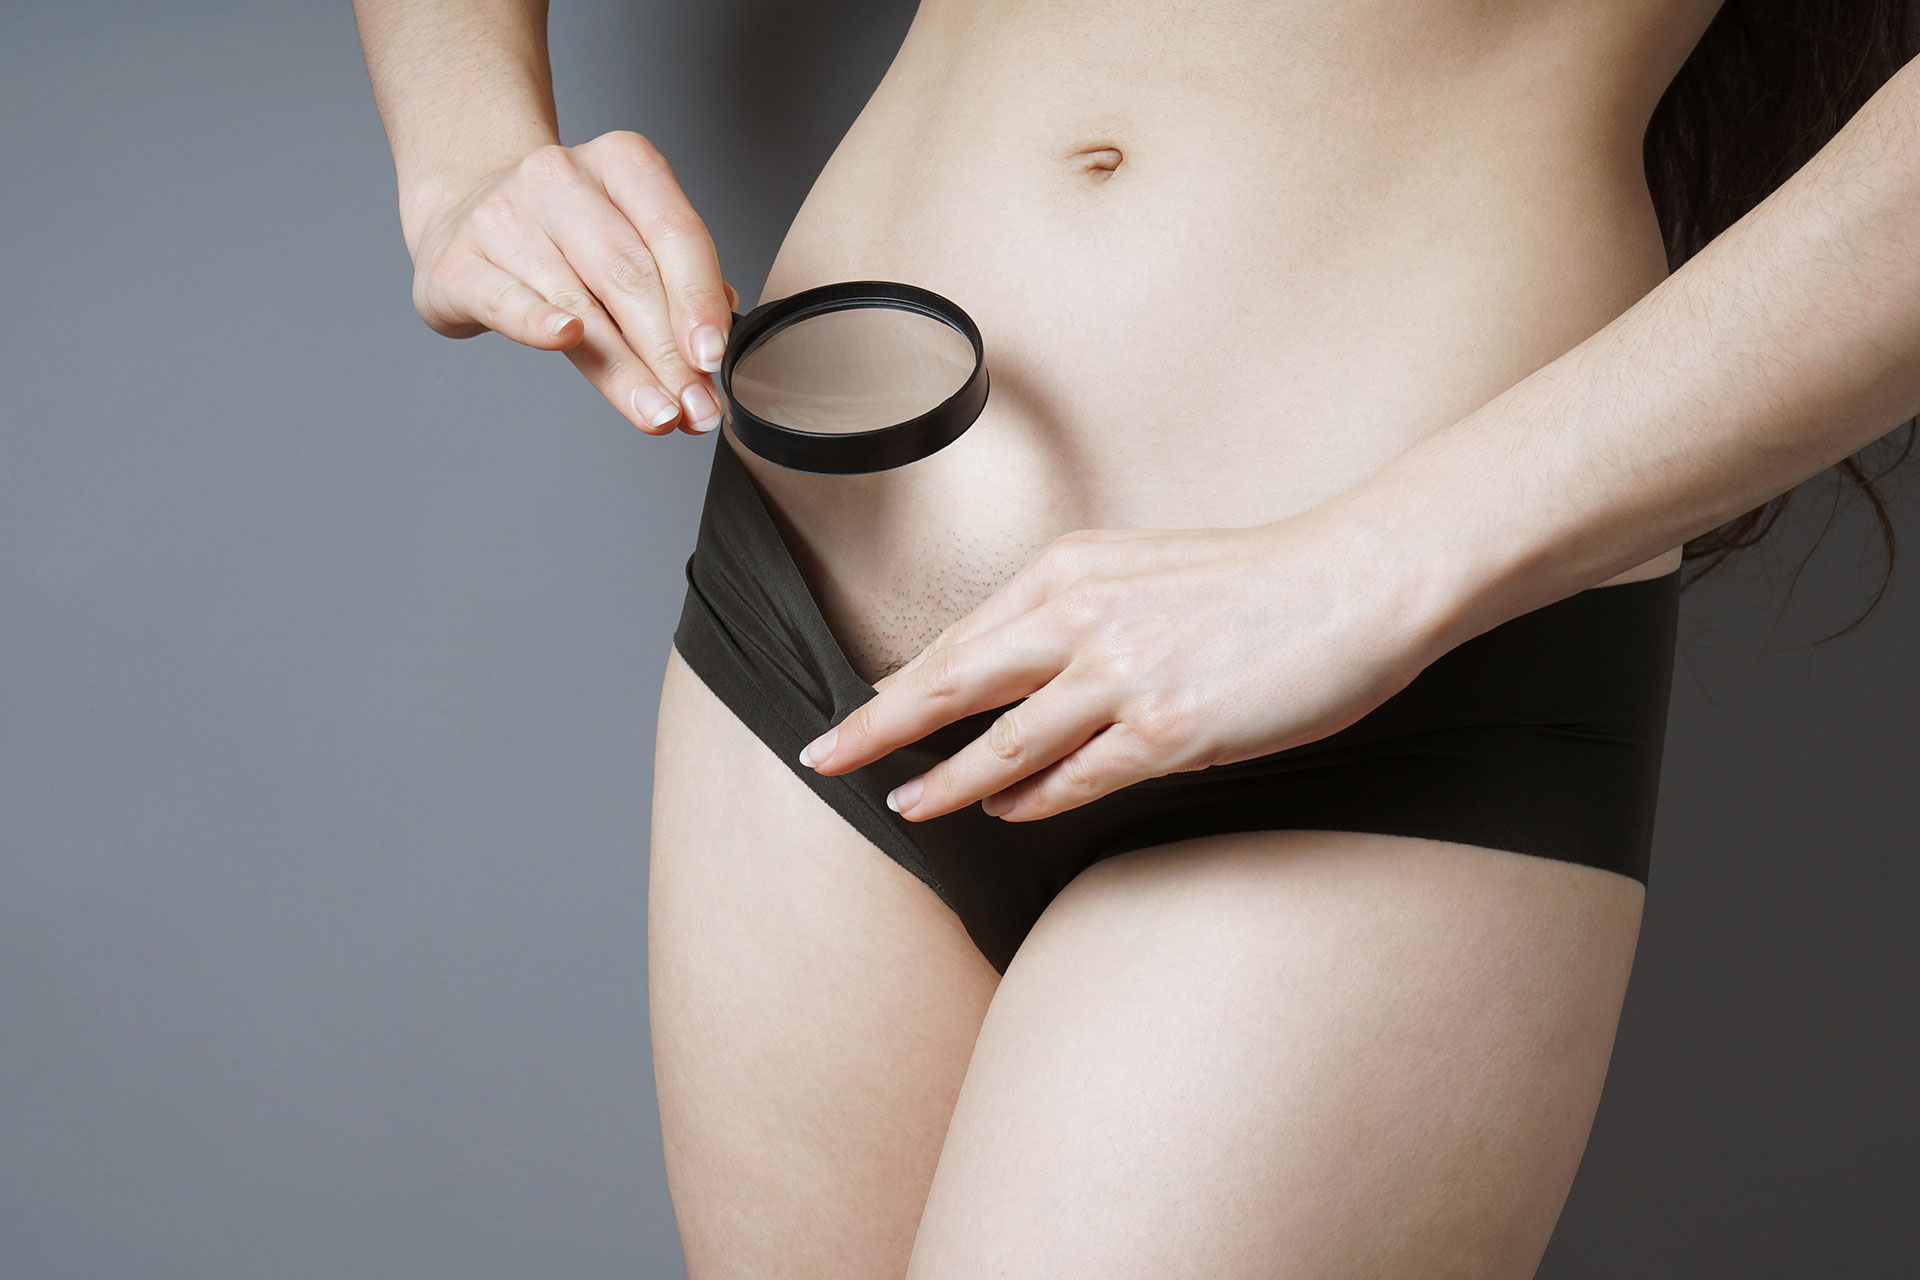 Vaginal yeast infection symptoms, causes and prevention